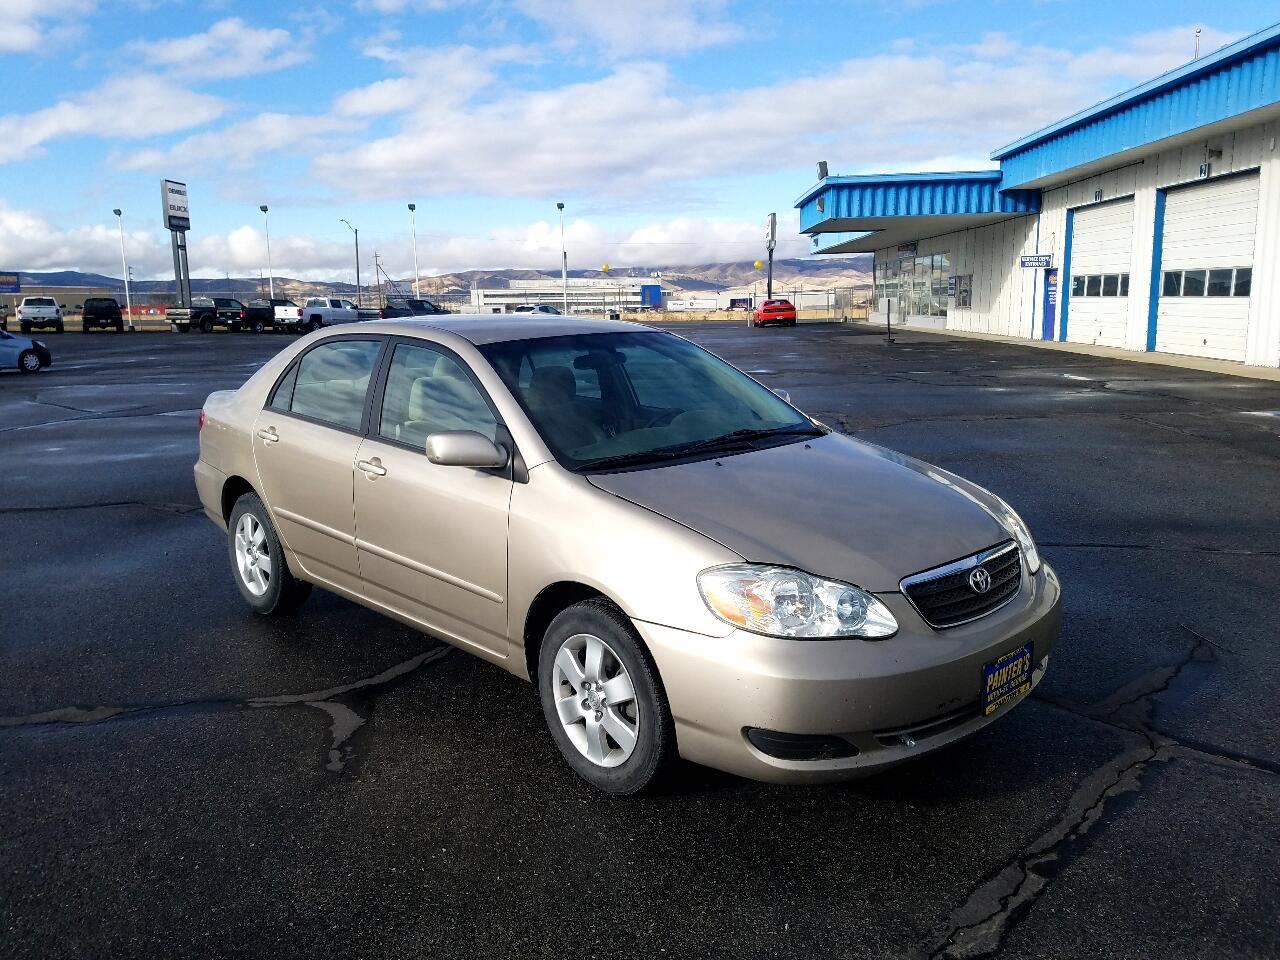 2006 Toyota Corolla 4dr Sdn CE Manual (Natl)